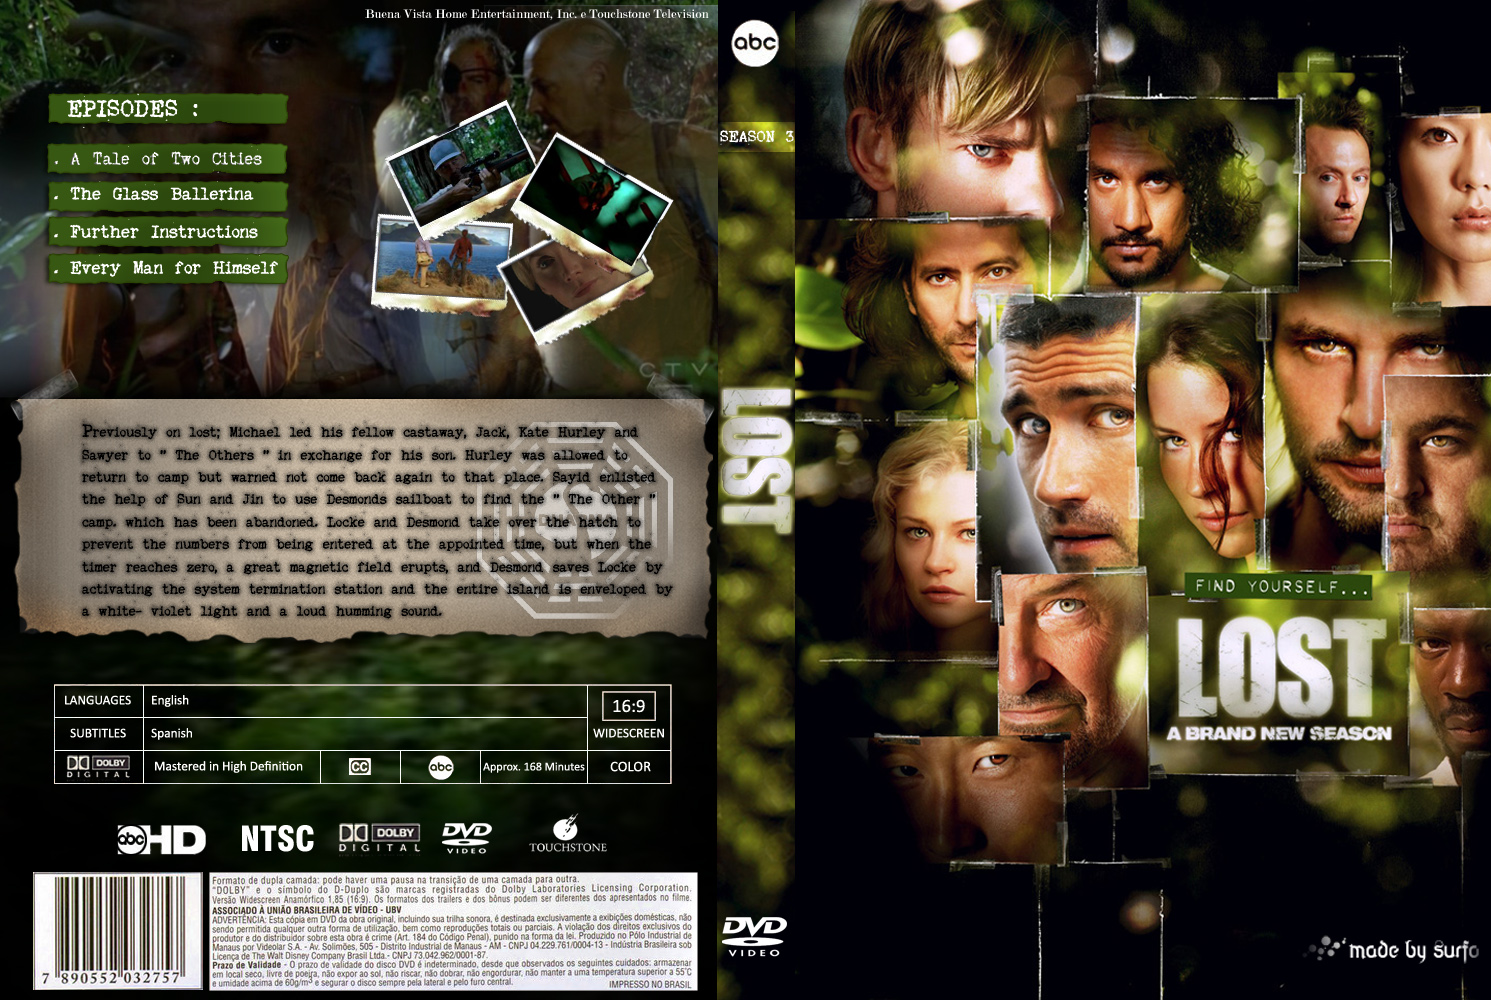 Lost : dvd covers - Imágenes - Taringa!